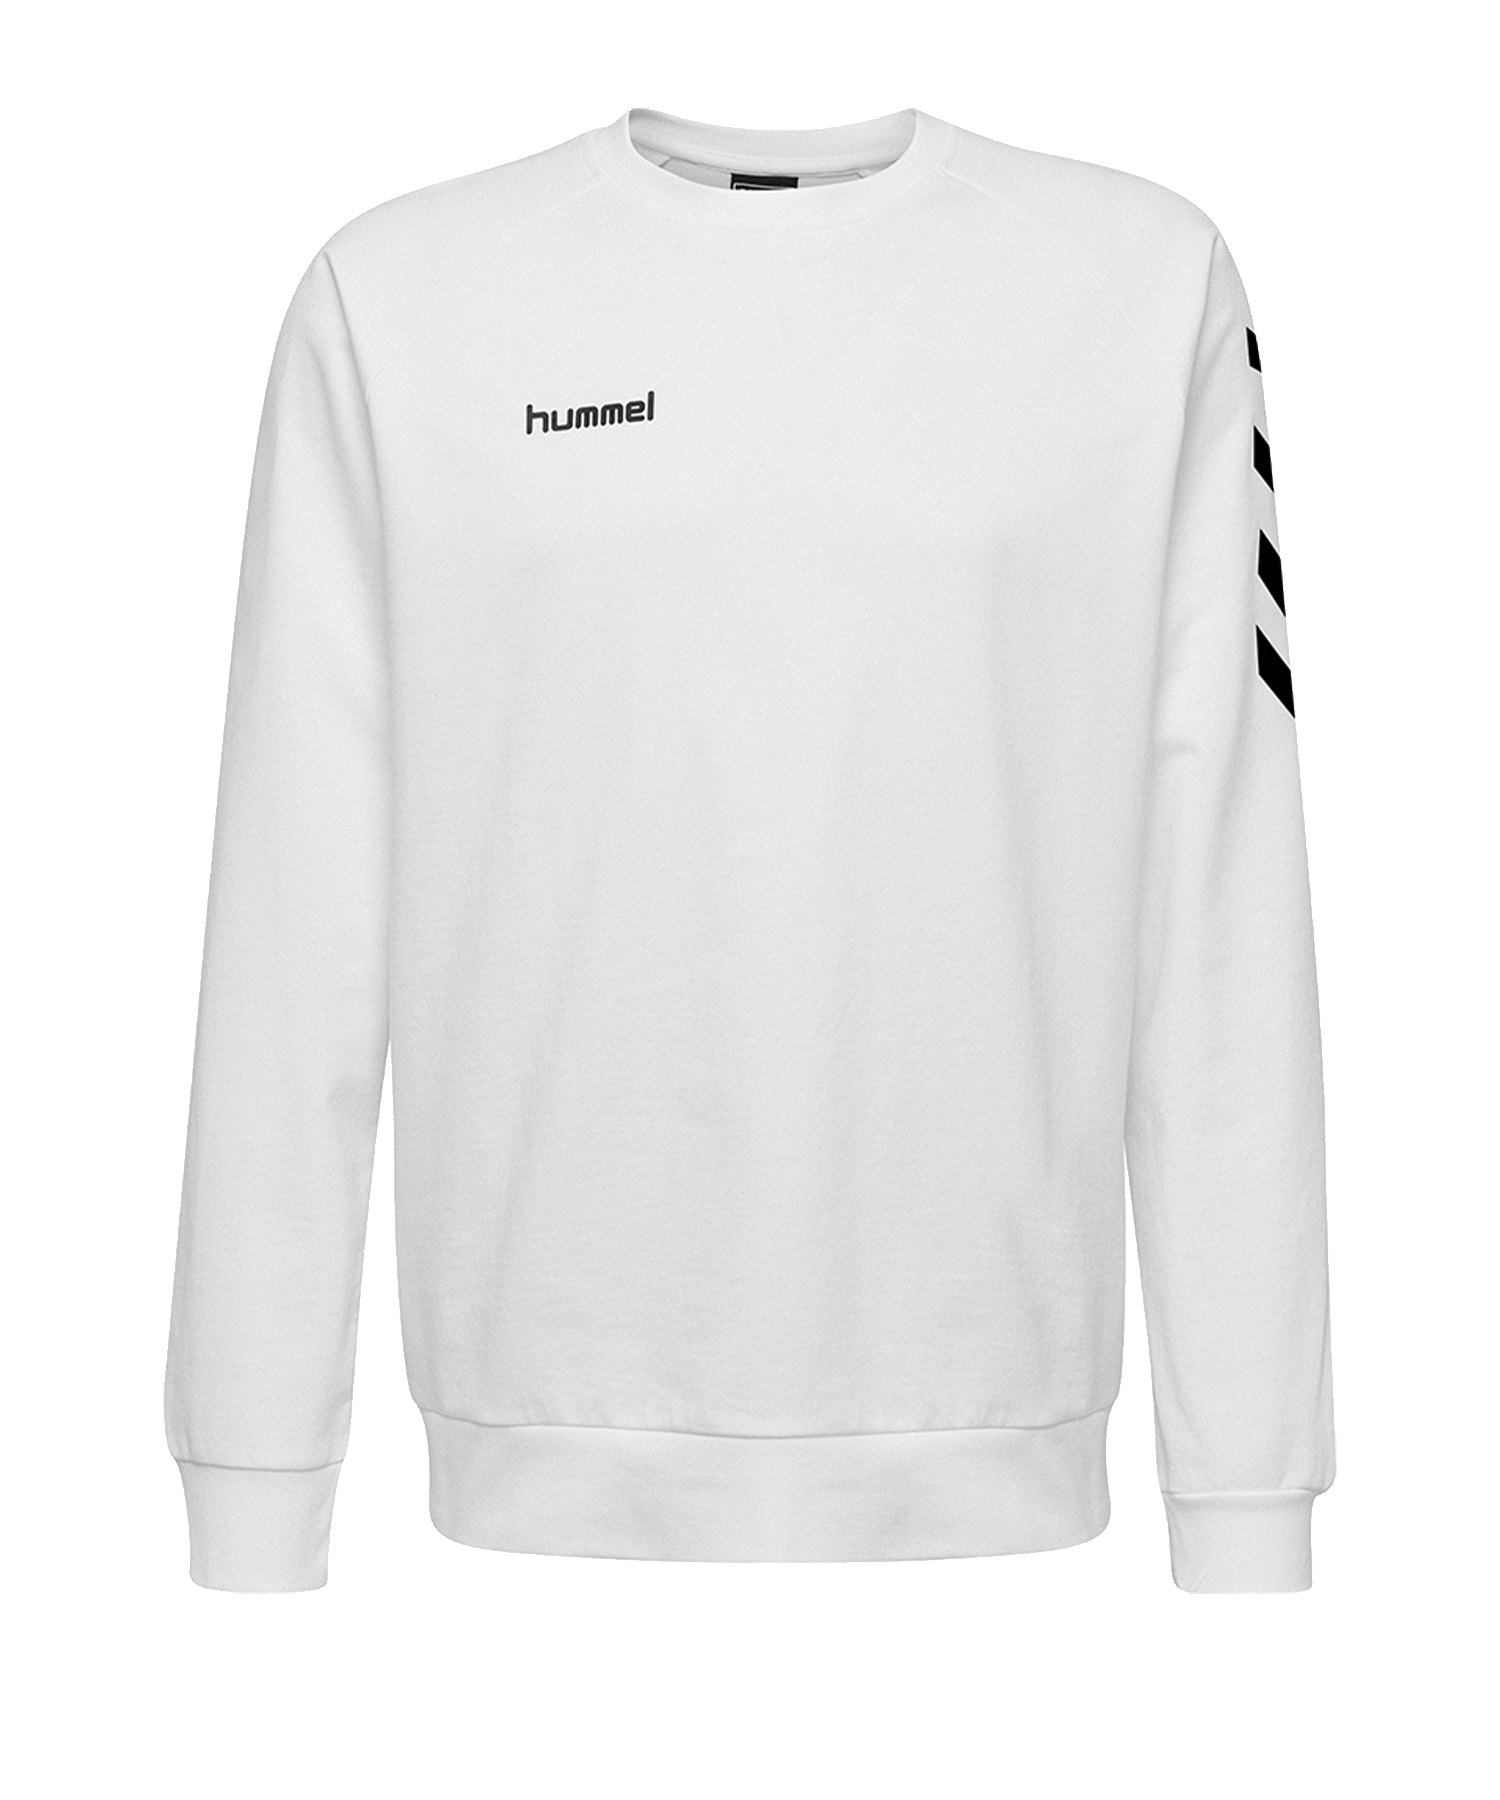 Hummel Cotton Sweatshirt Weiss F9001 - Weiss